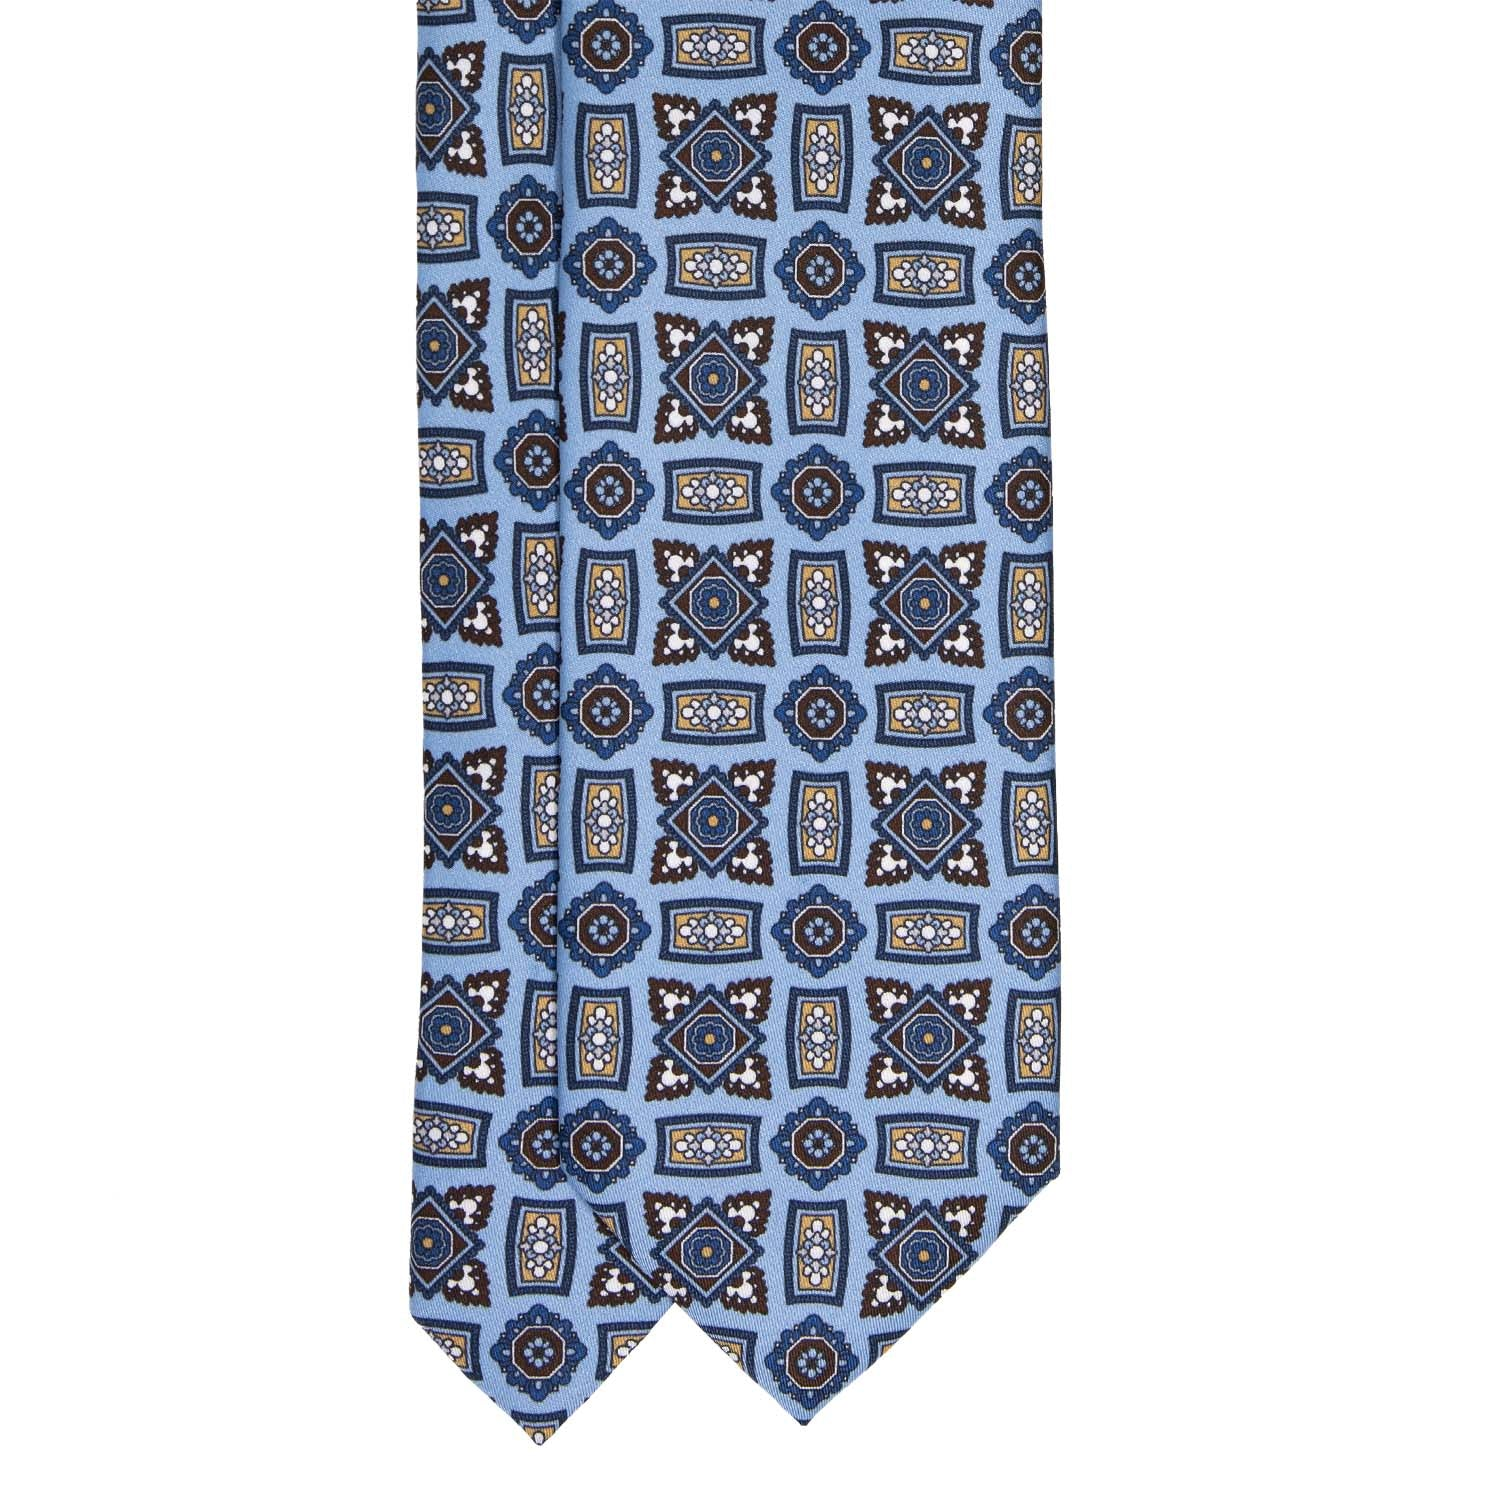 serà fine silk - Light Blue Square Medallions Pattern Silk Tie